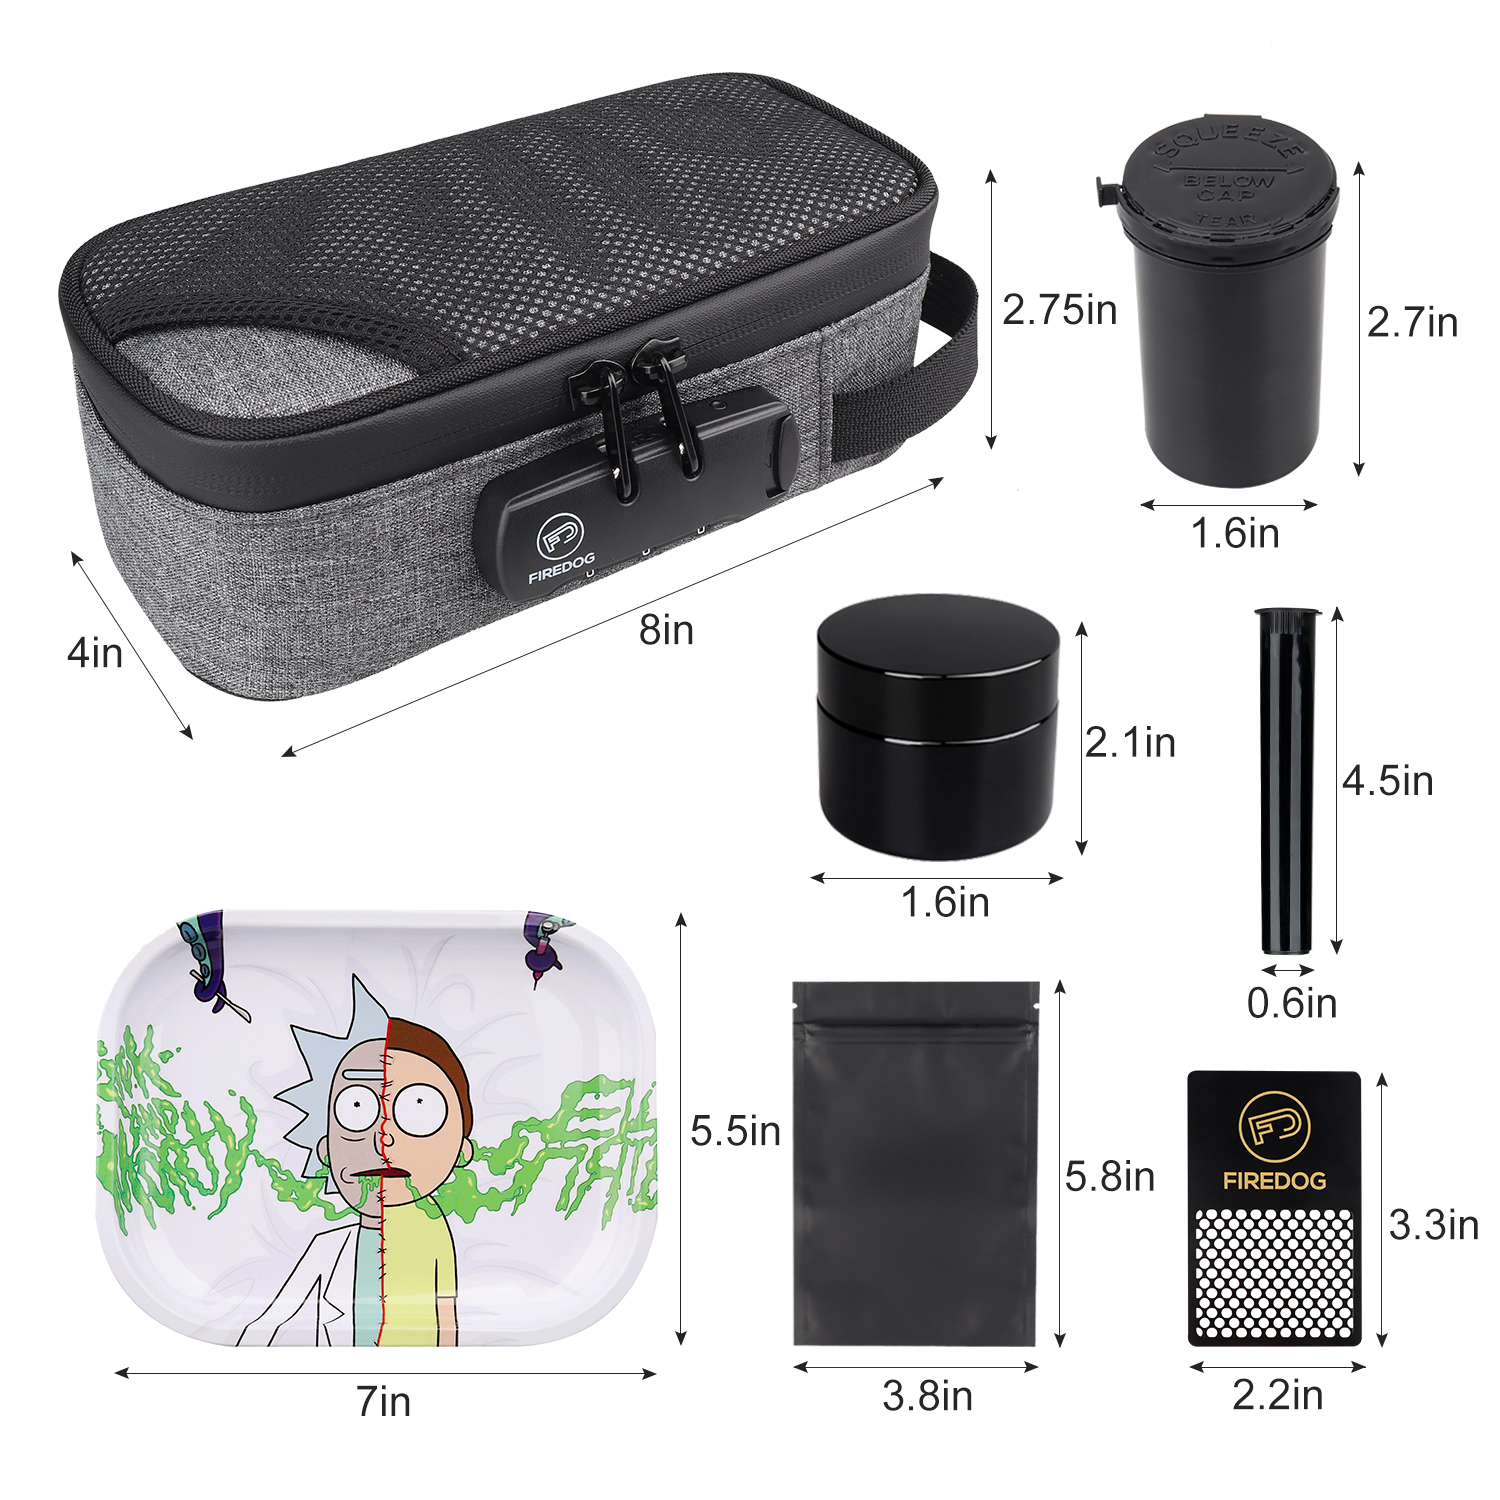 FIREDOG Smoking Smell Proof Case with Lock Kit  Stash Case with Rolling Tray Tobacco Cigarettes Bag Set 2